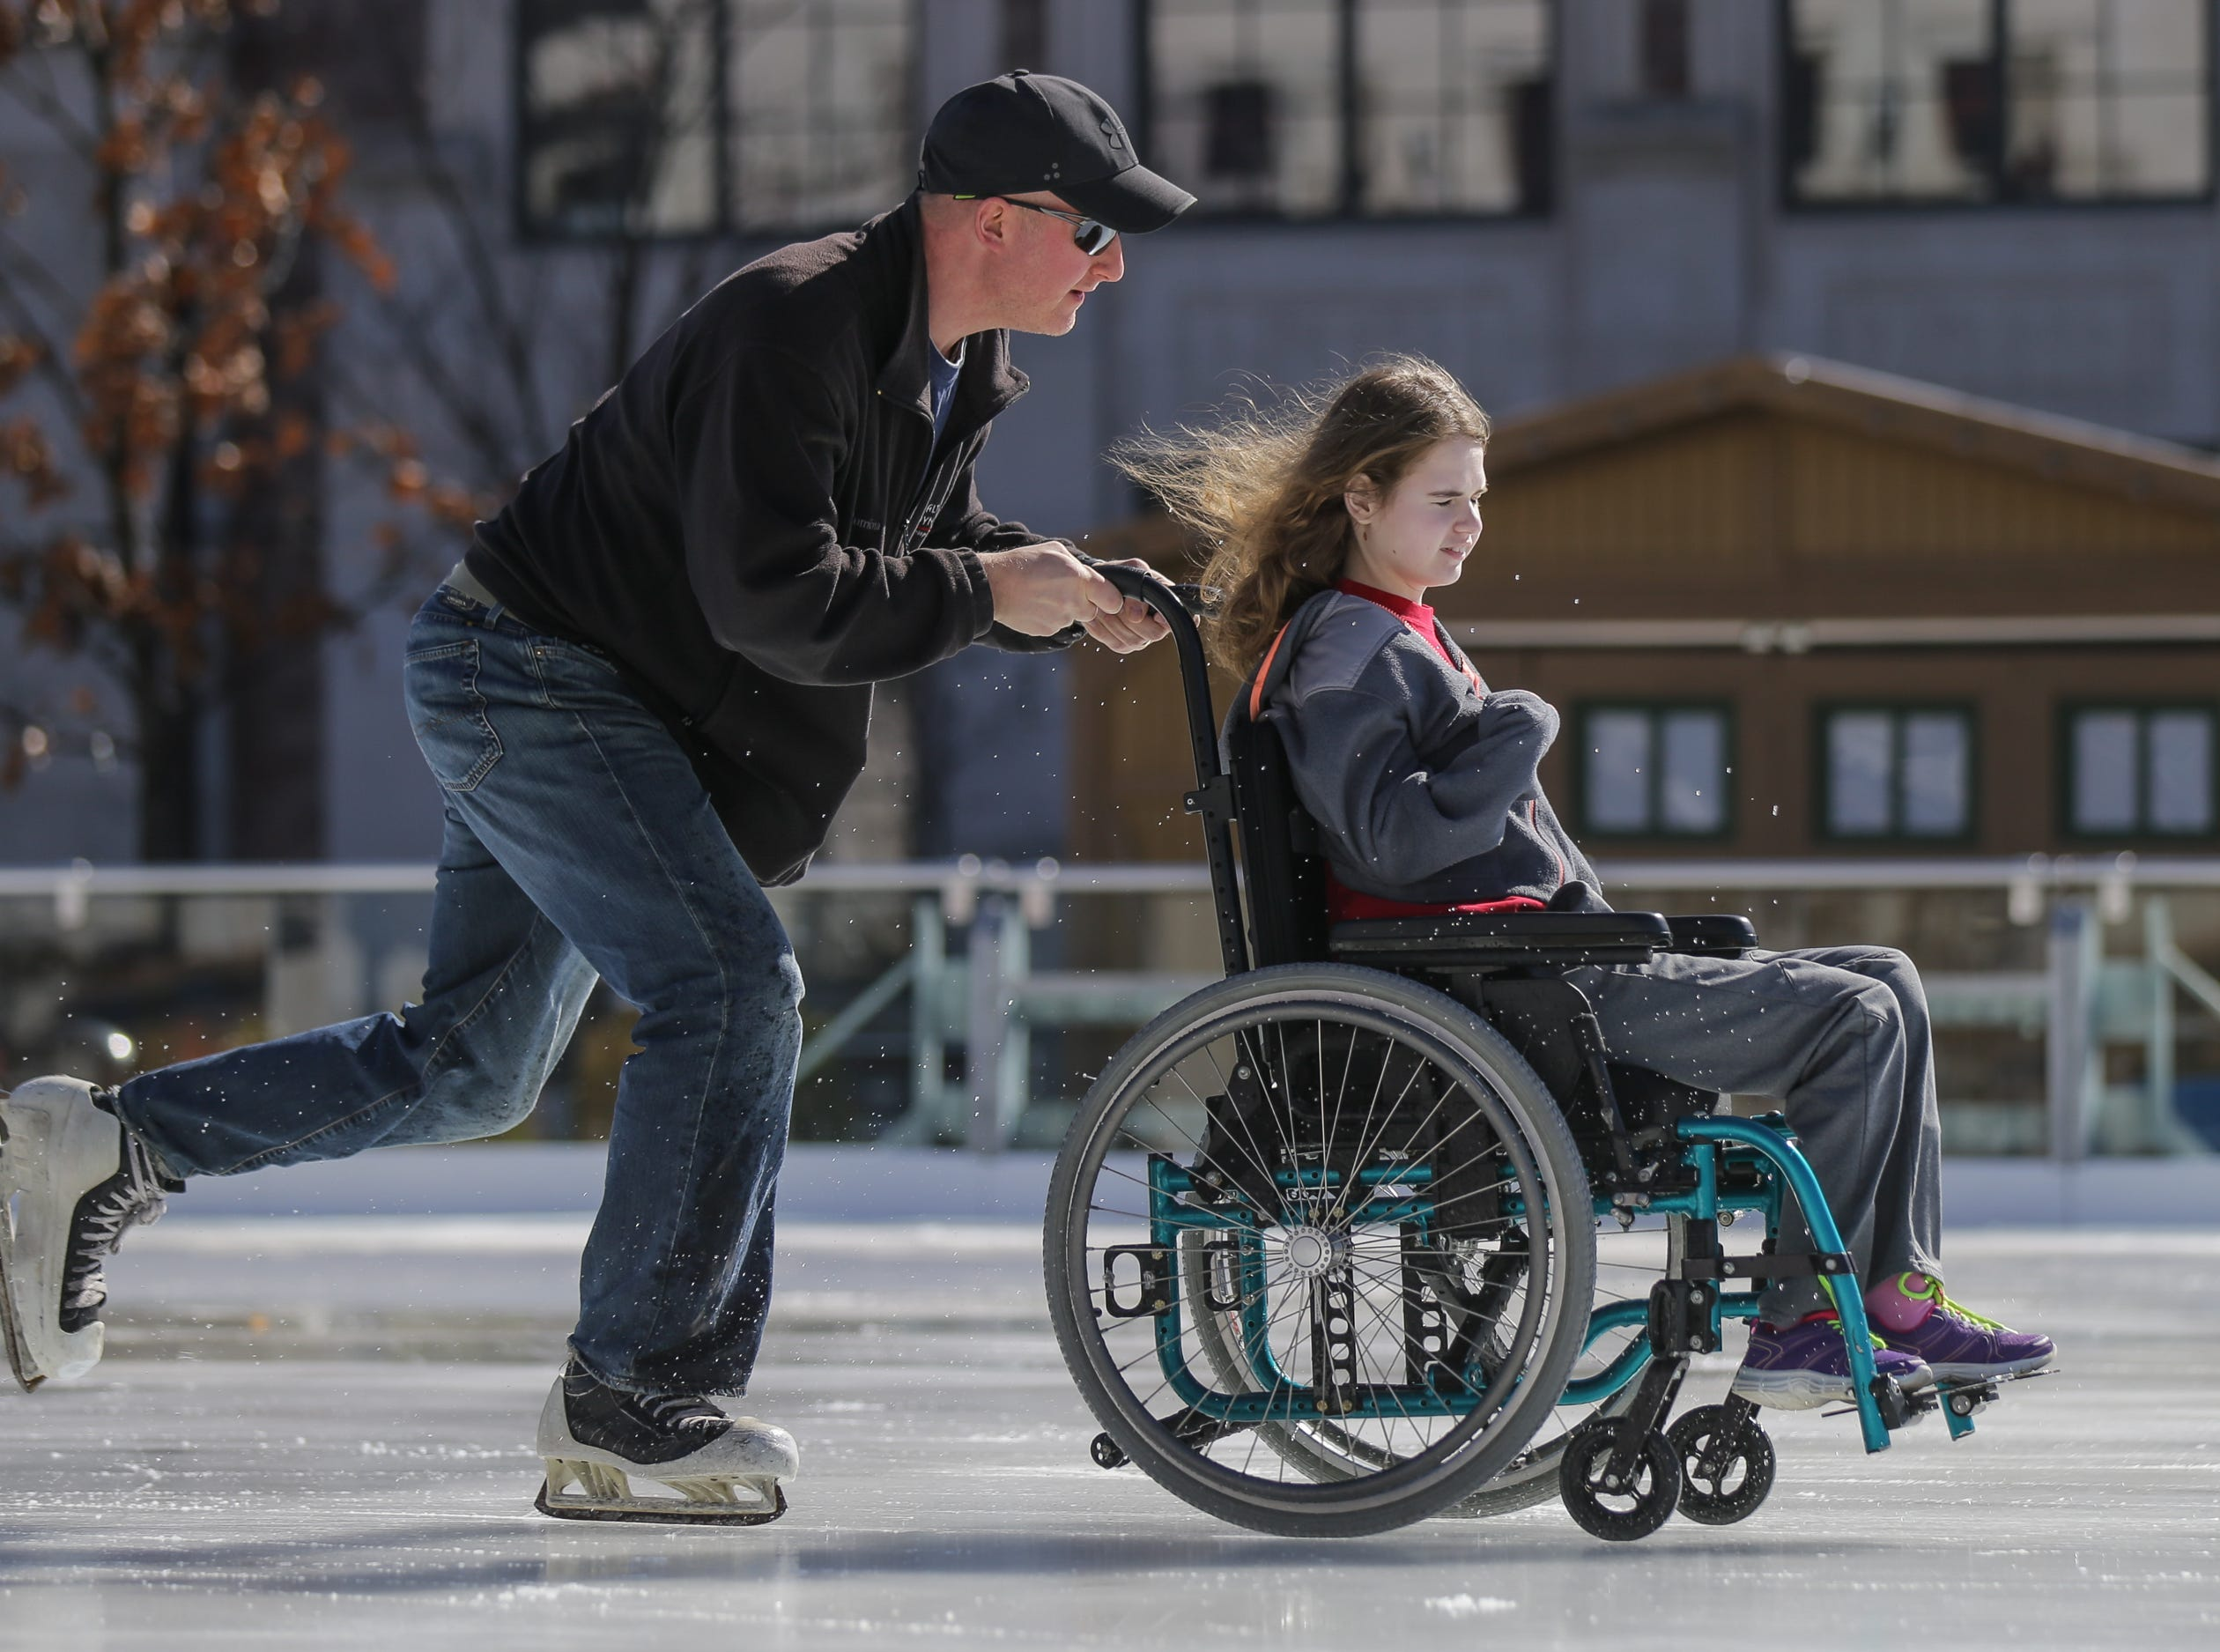 Former college hockey player David Weninger pushes his daughter Lauryn Weninger around The Ice at Center Green skating rink during a special needs afternoon skating session in Carmel Ind. on Monday, Feb. 26, 2018.